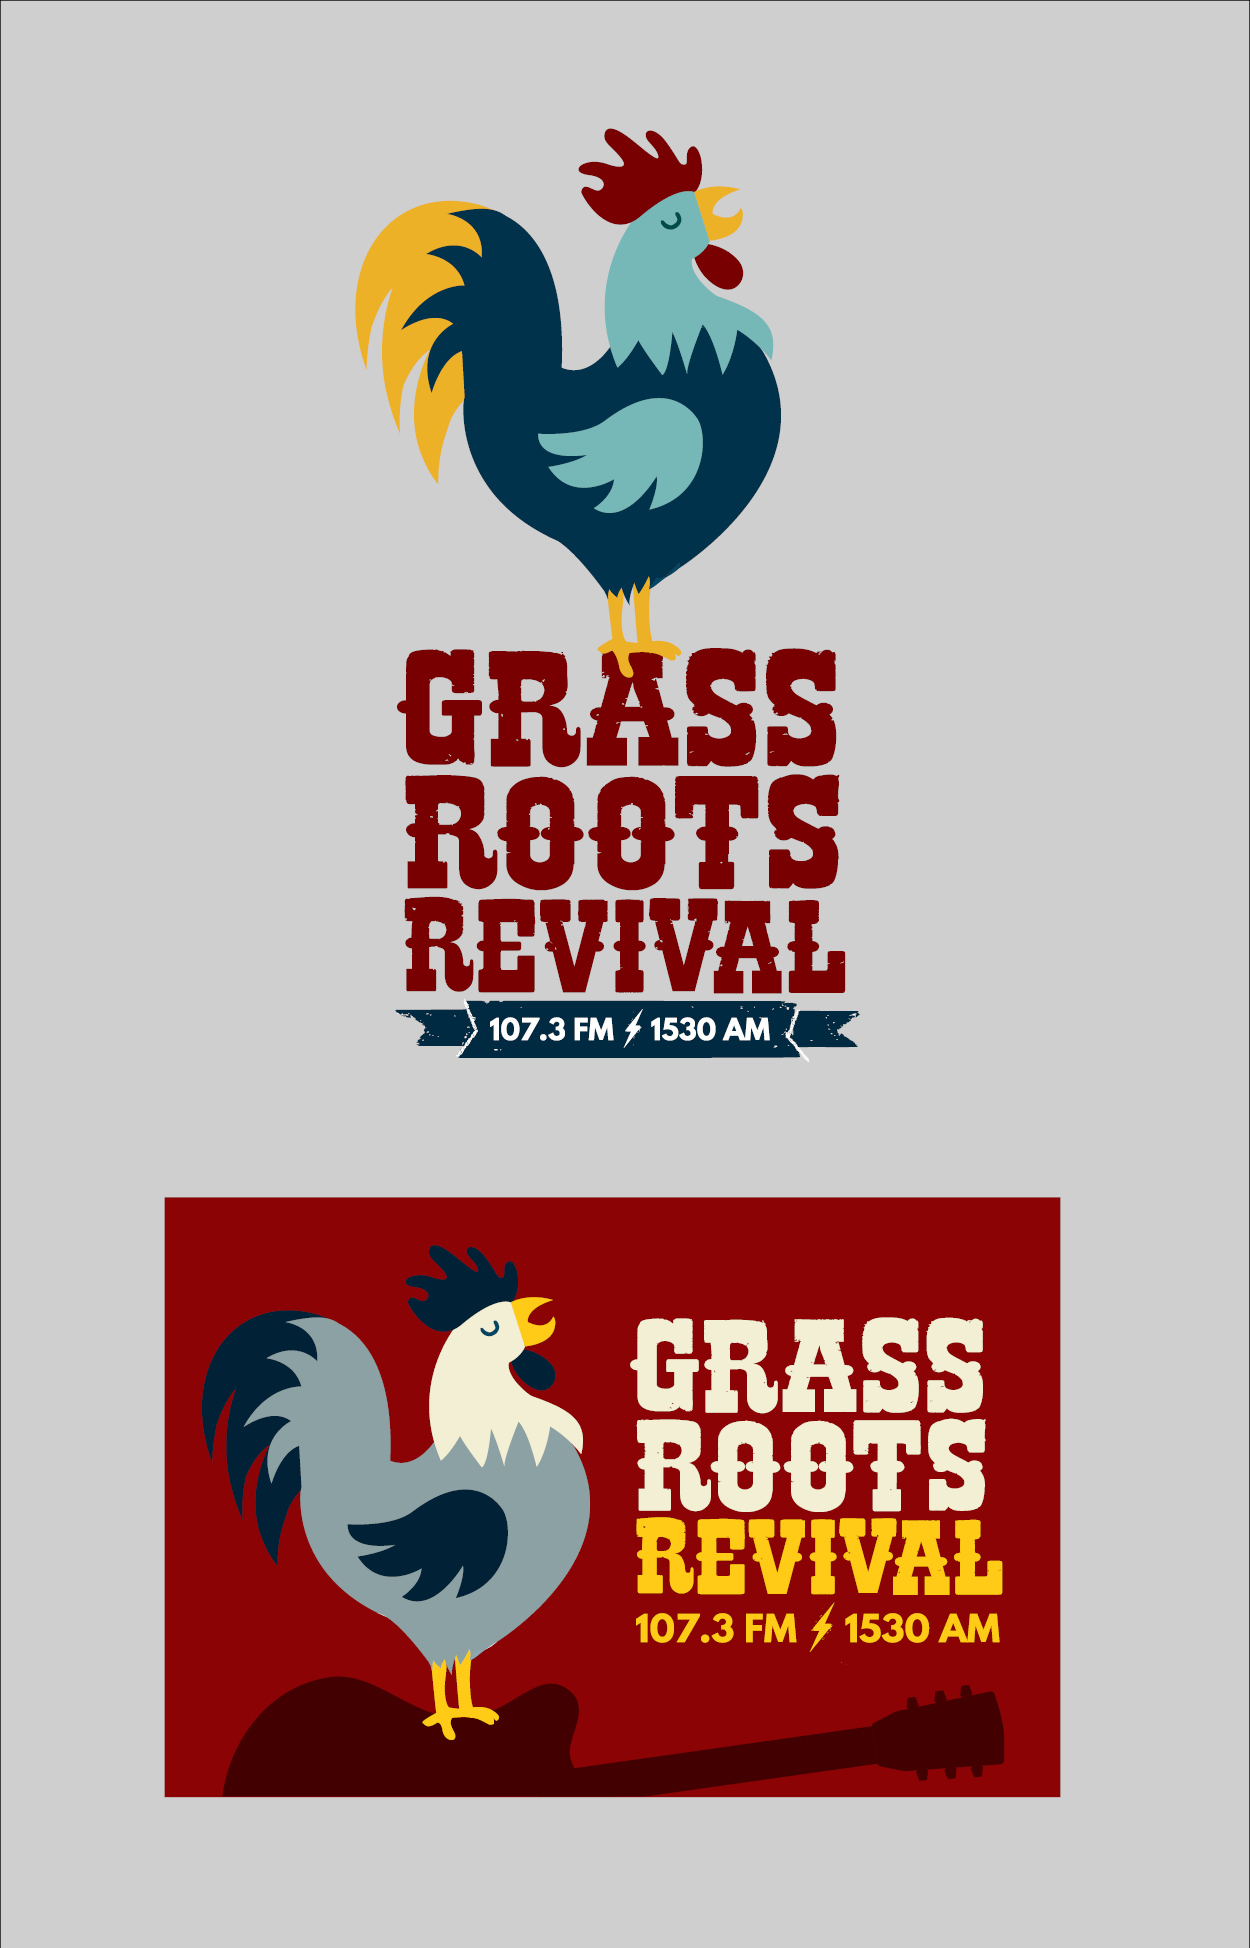 GRASS ROOTS REVIVAL